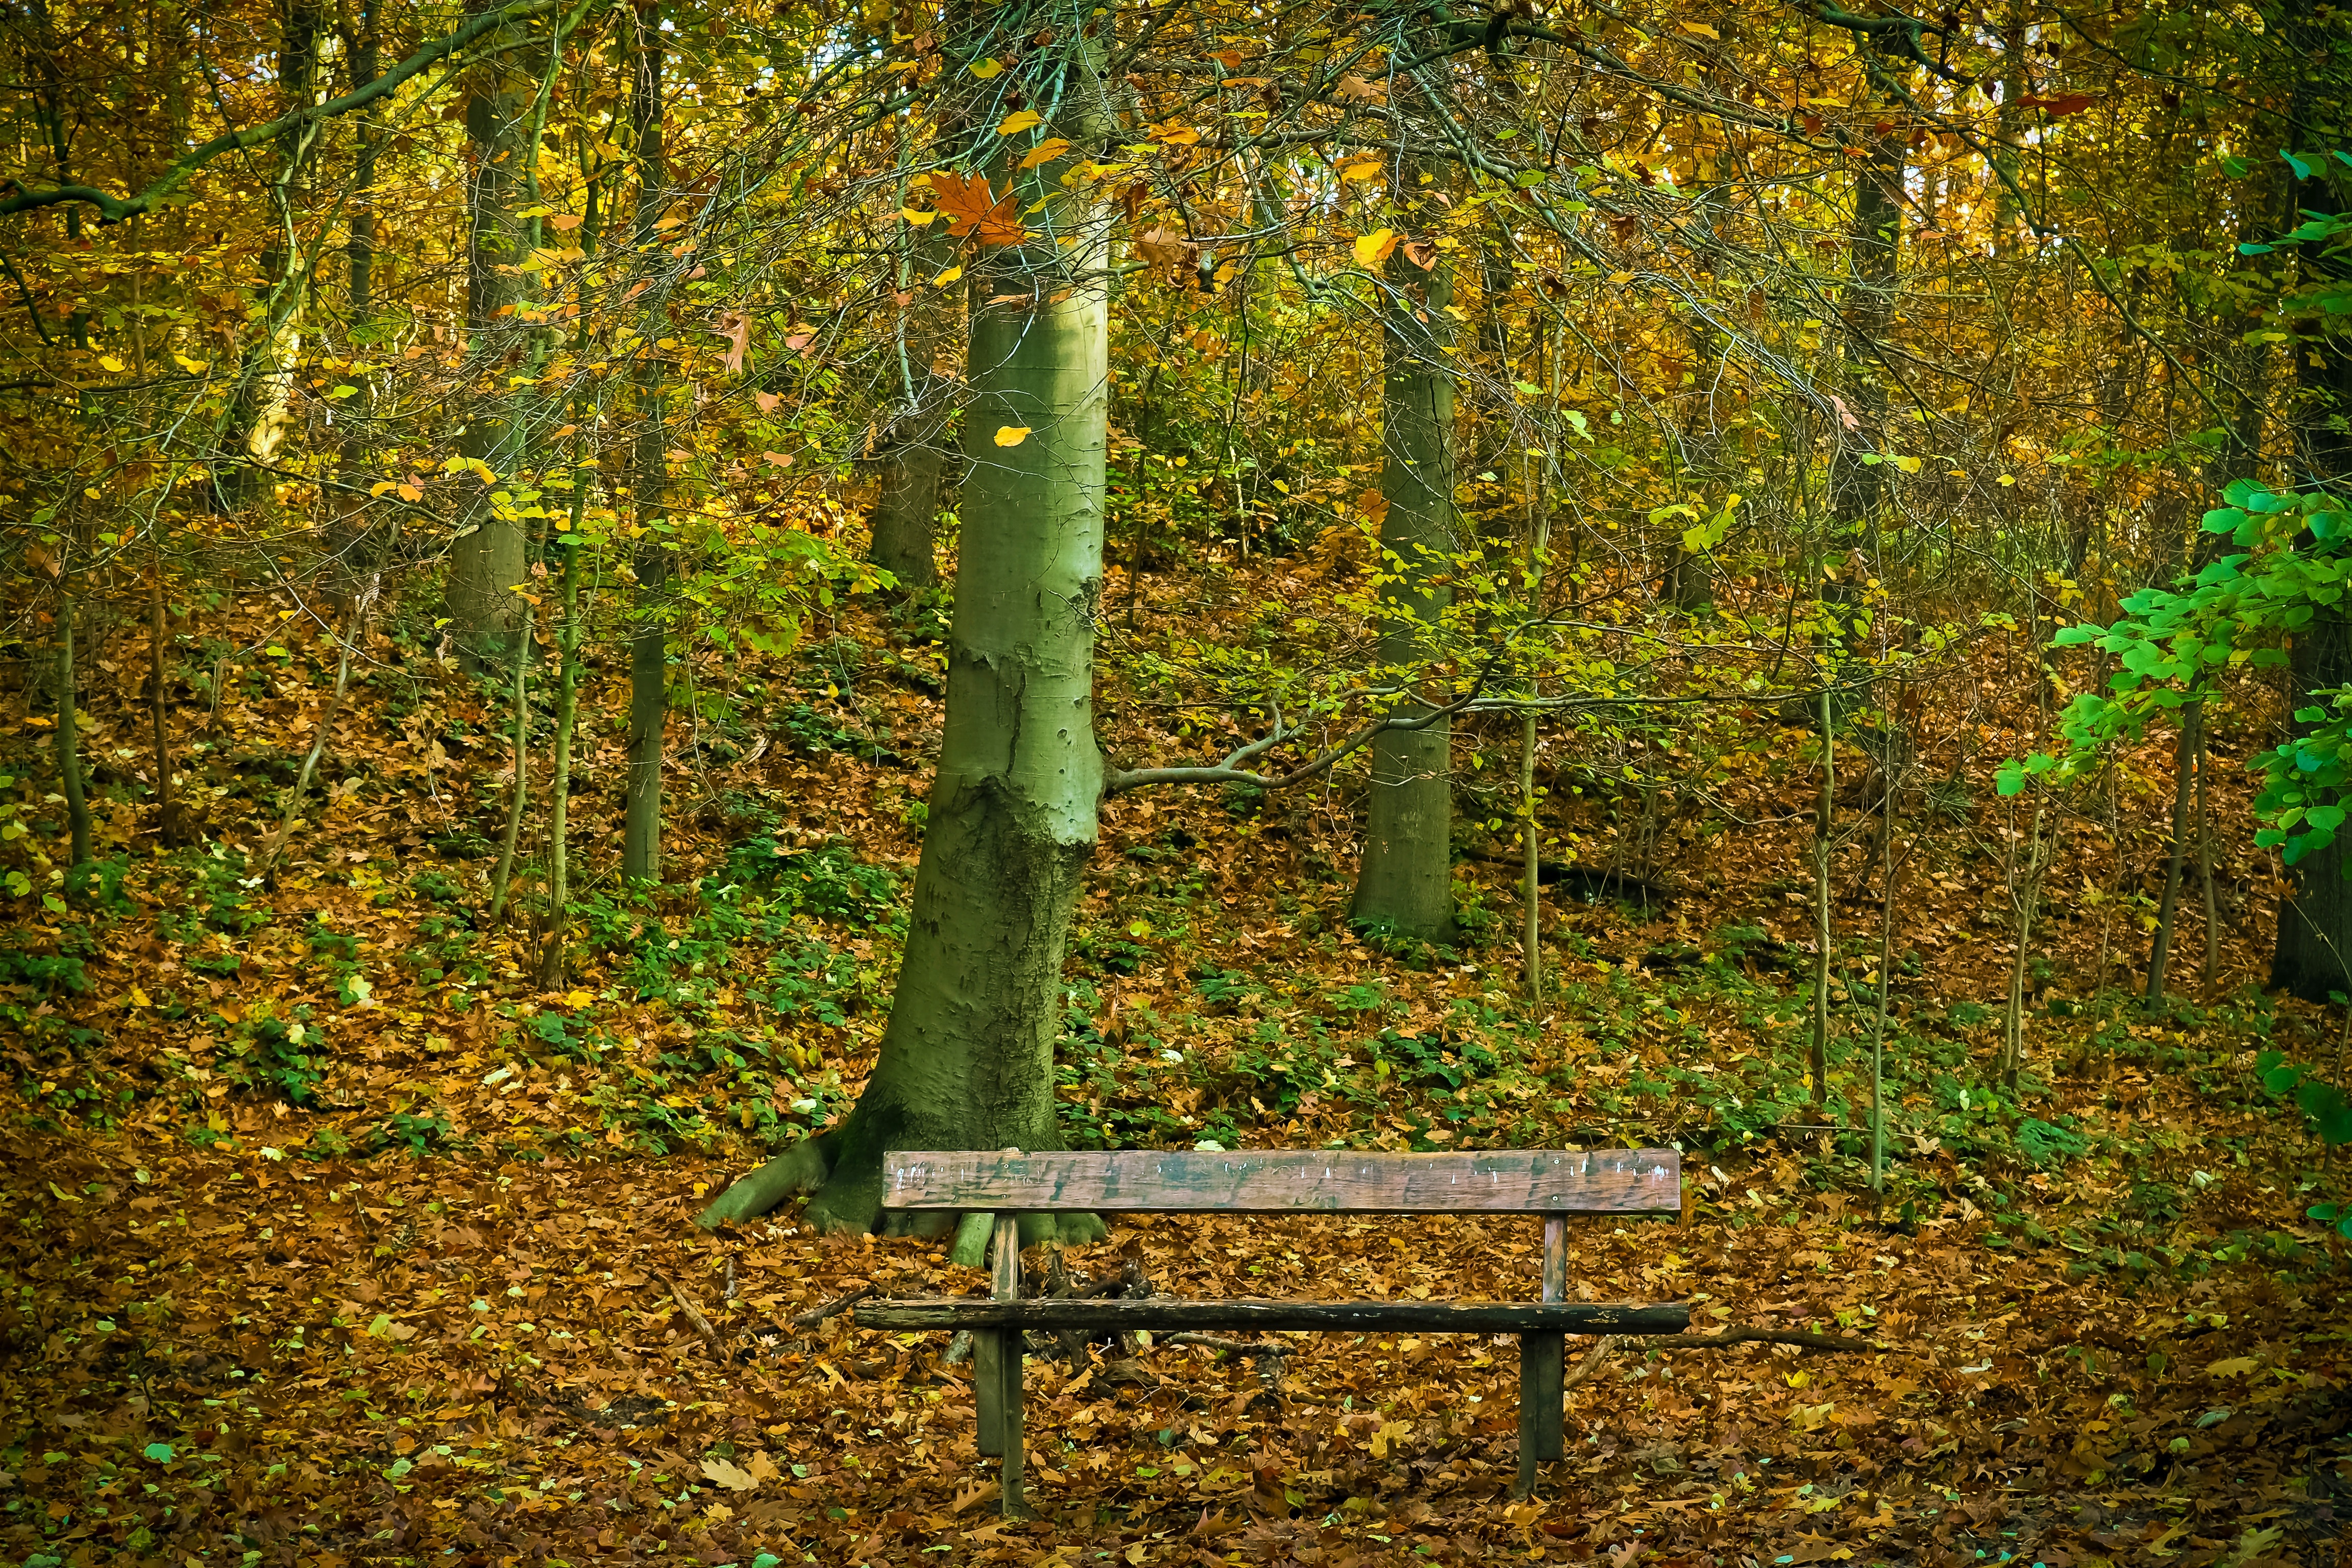 Bench in park during autumn photo